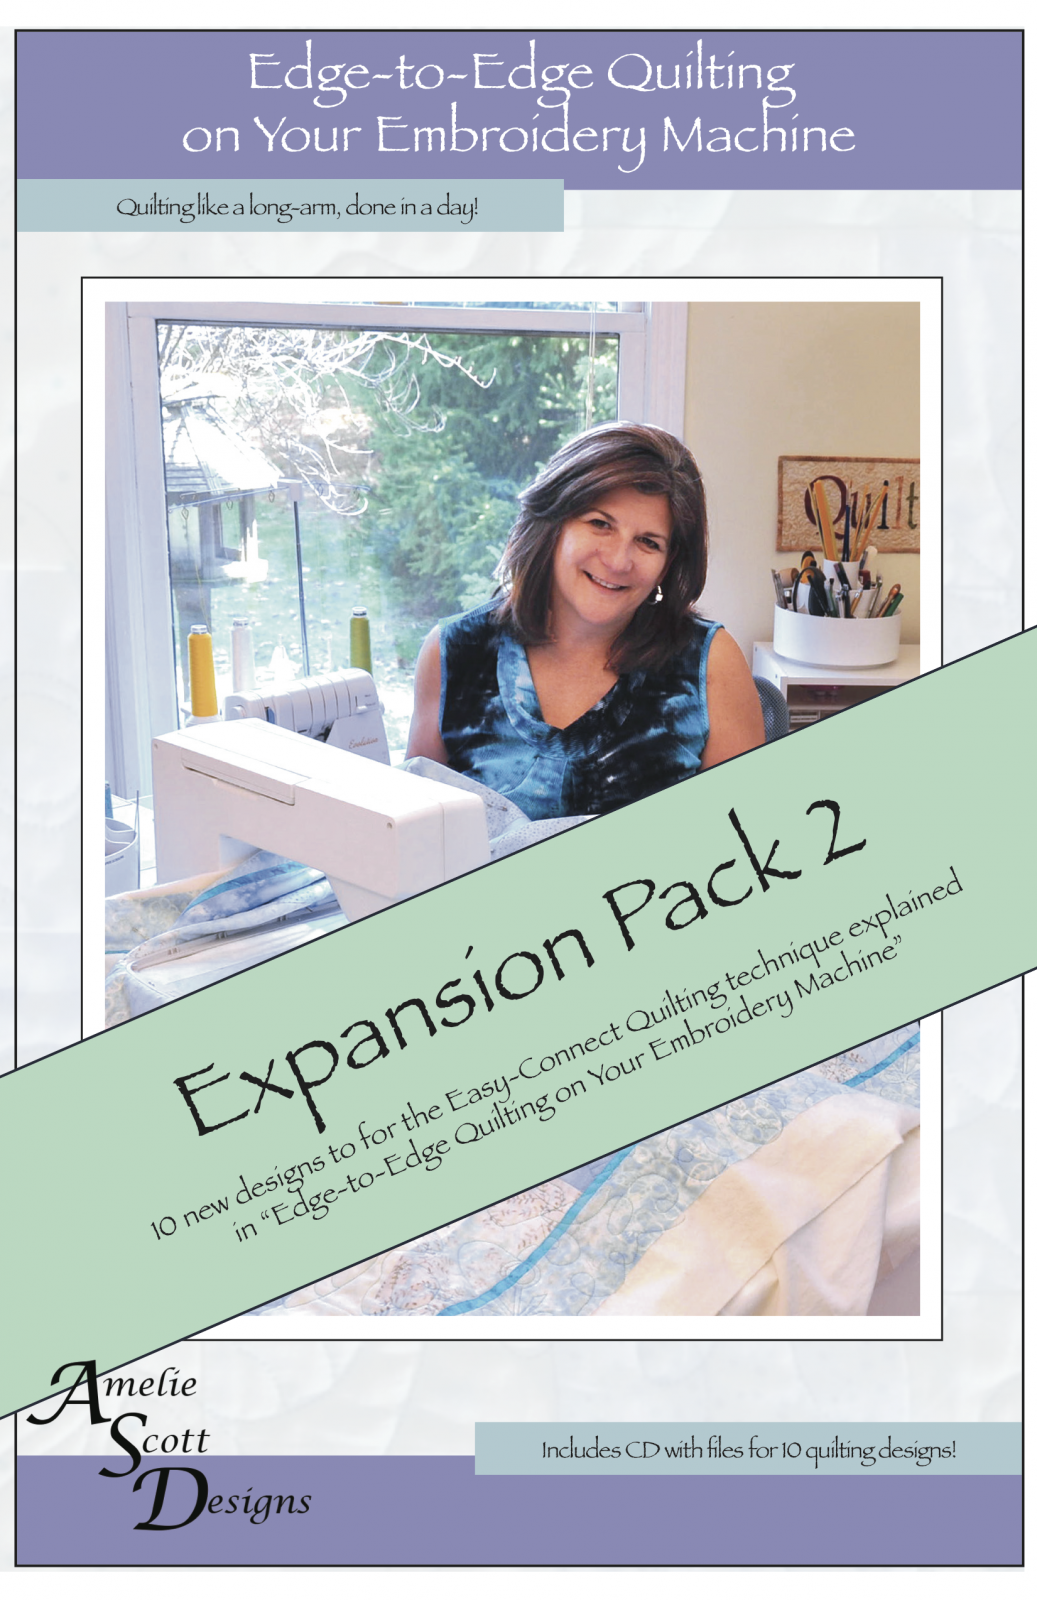 Edge-to-Edge Quilting on Your Embroidery Machine - Expansion Pack 2